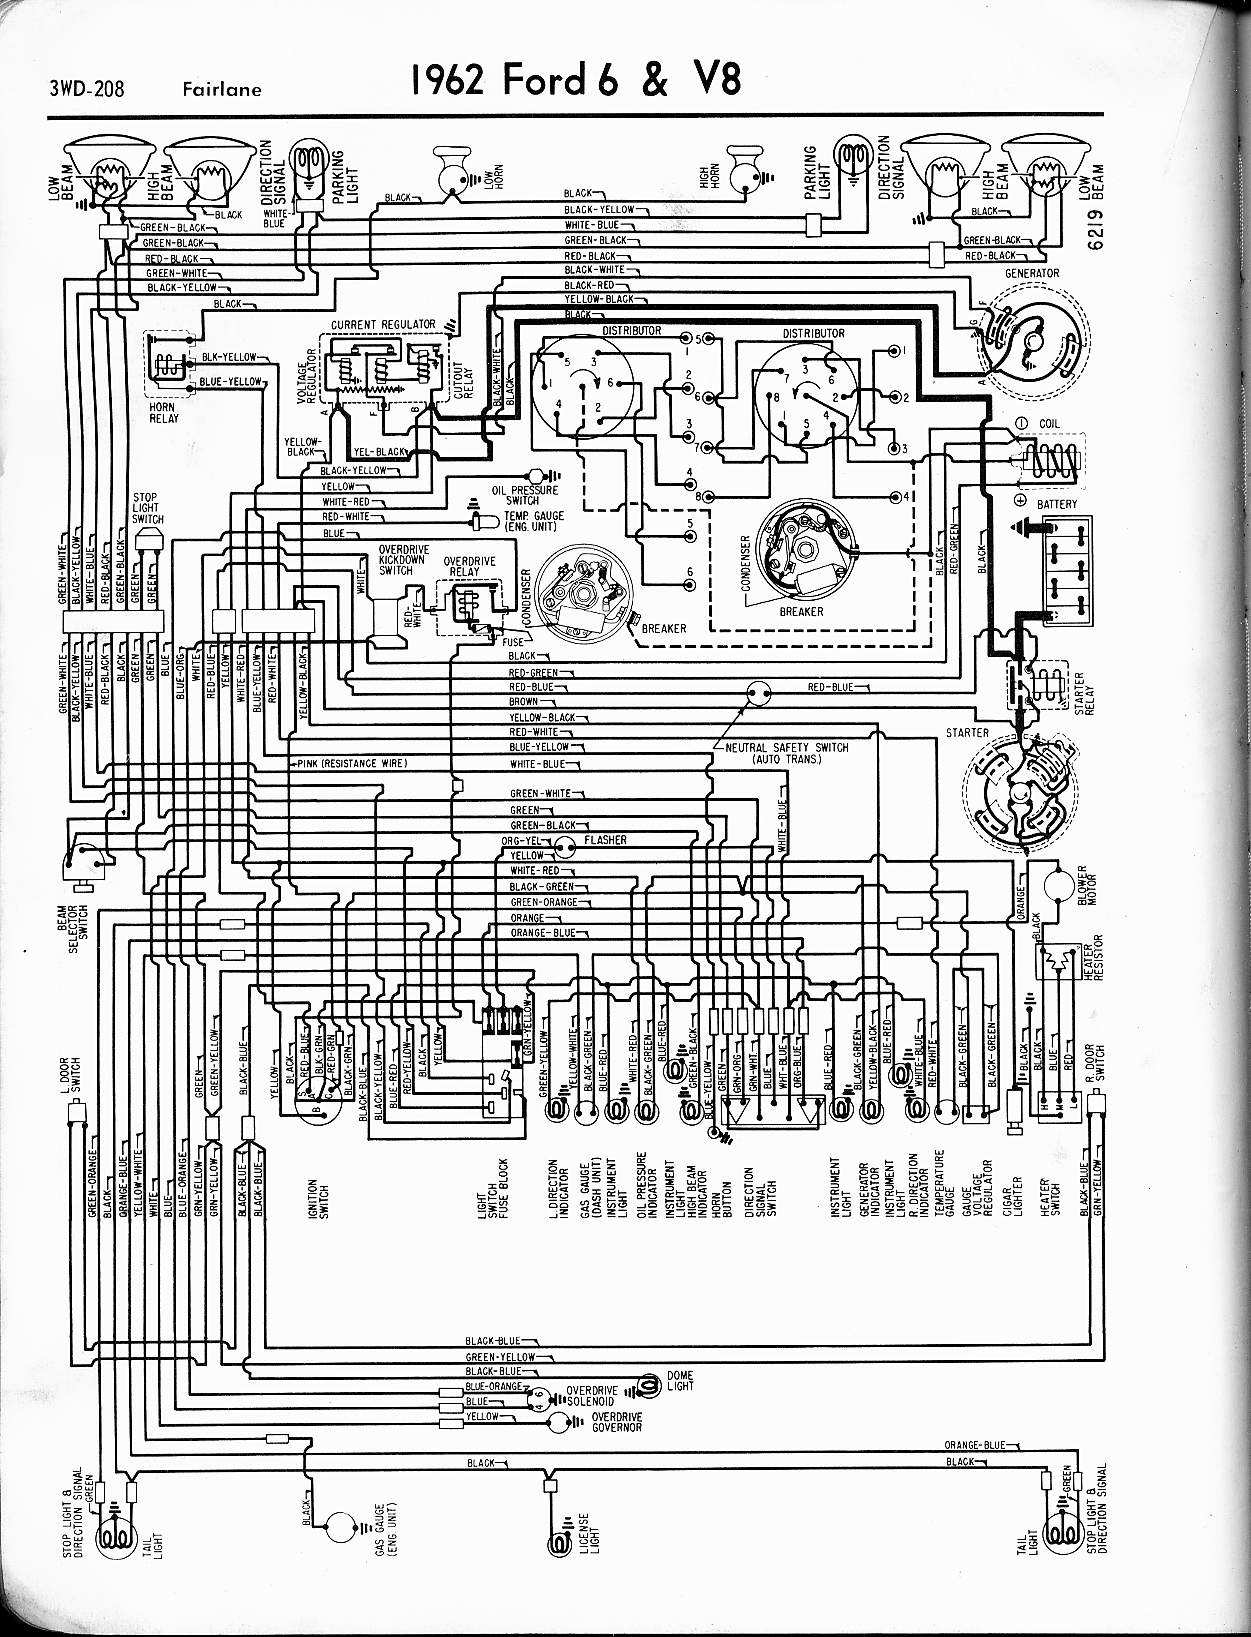 1962 Ford Fuse Box Diagram Wiring Data 2006 Focus Schematic Name 2005